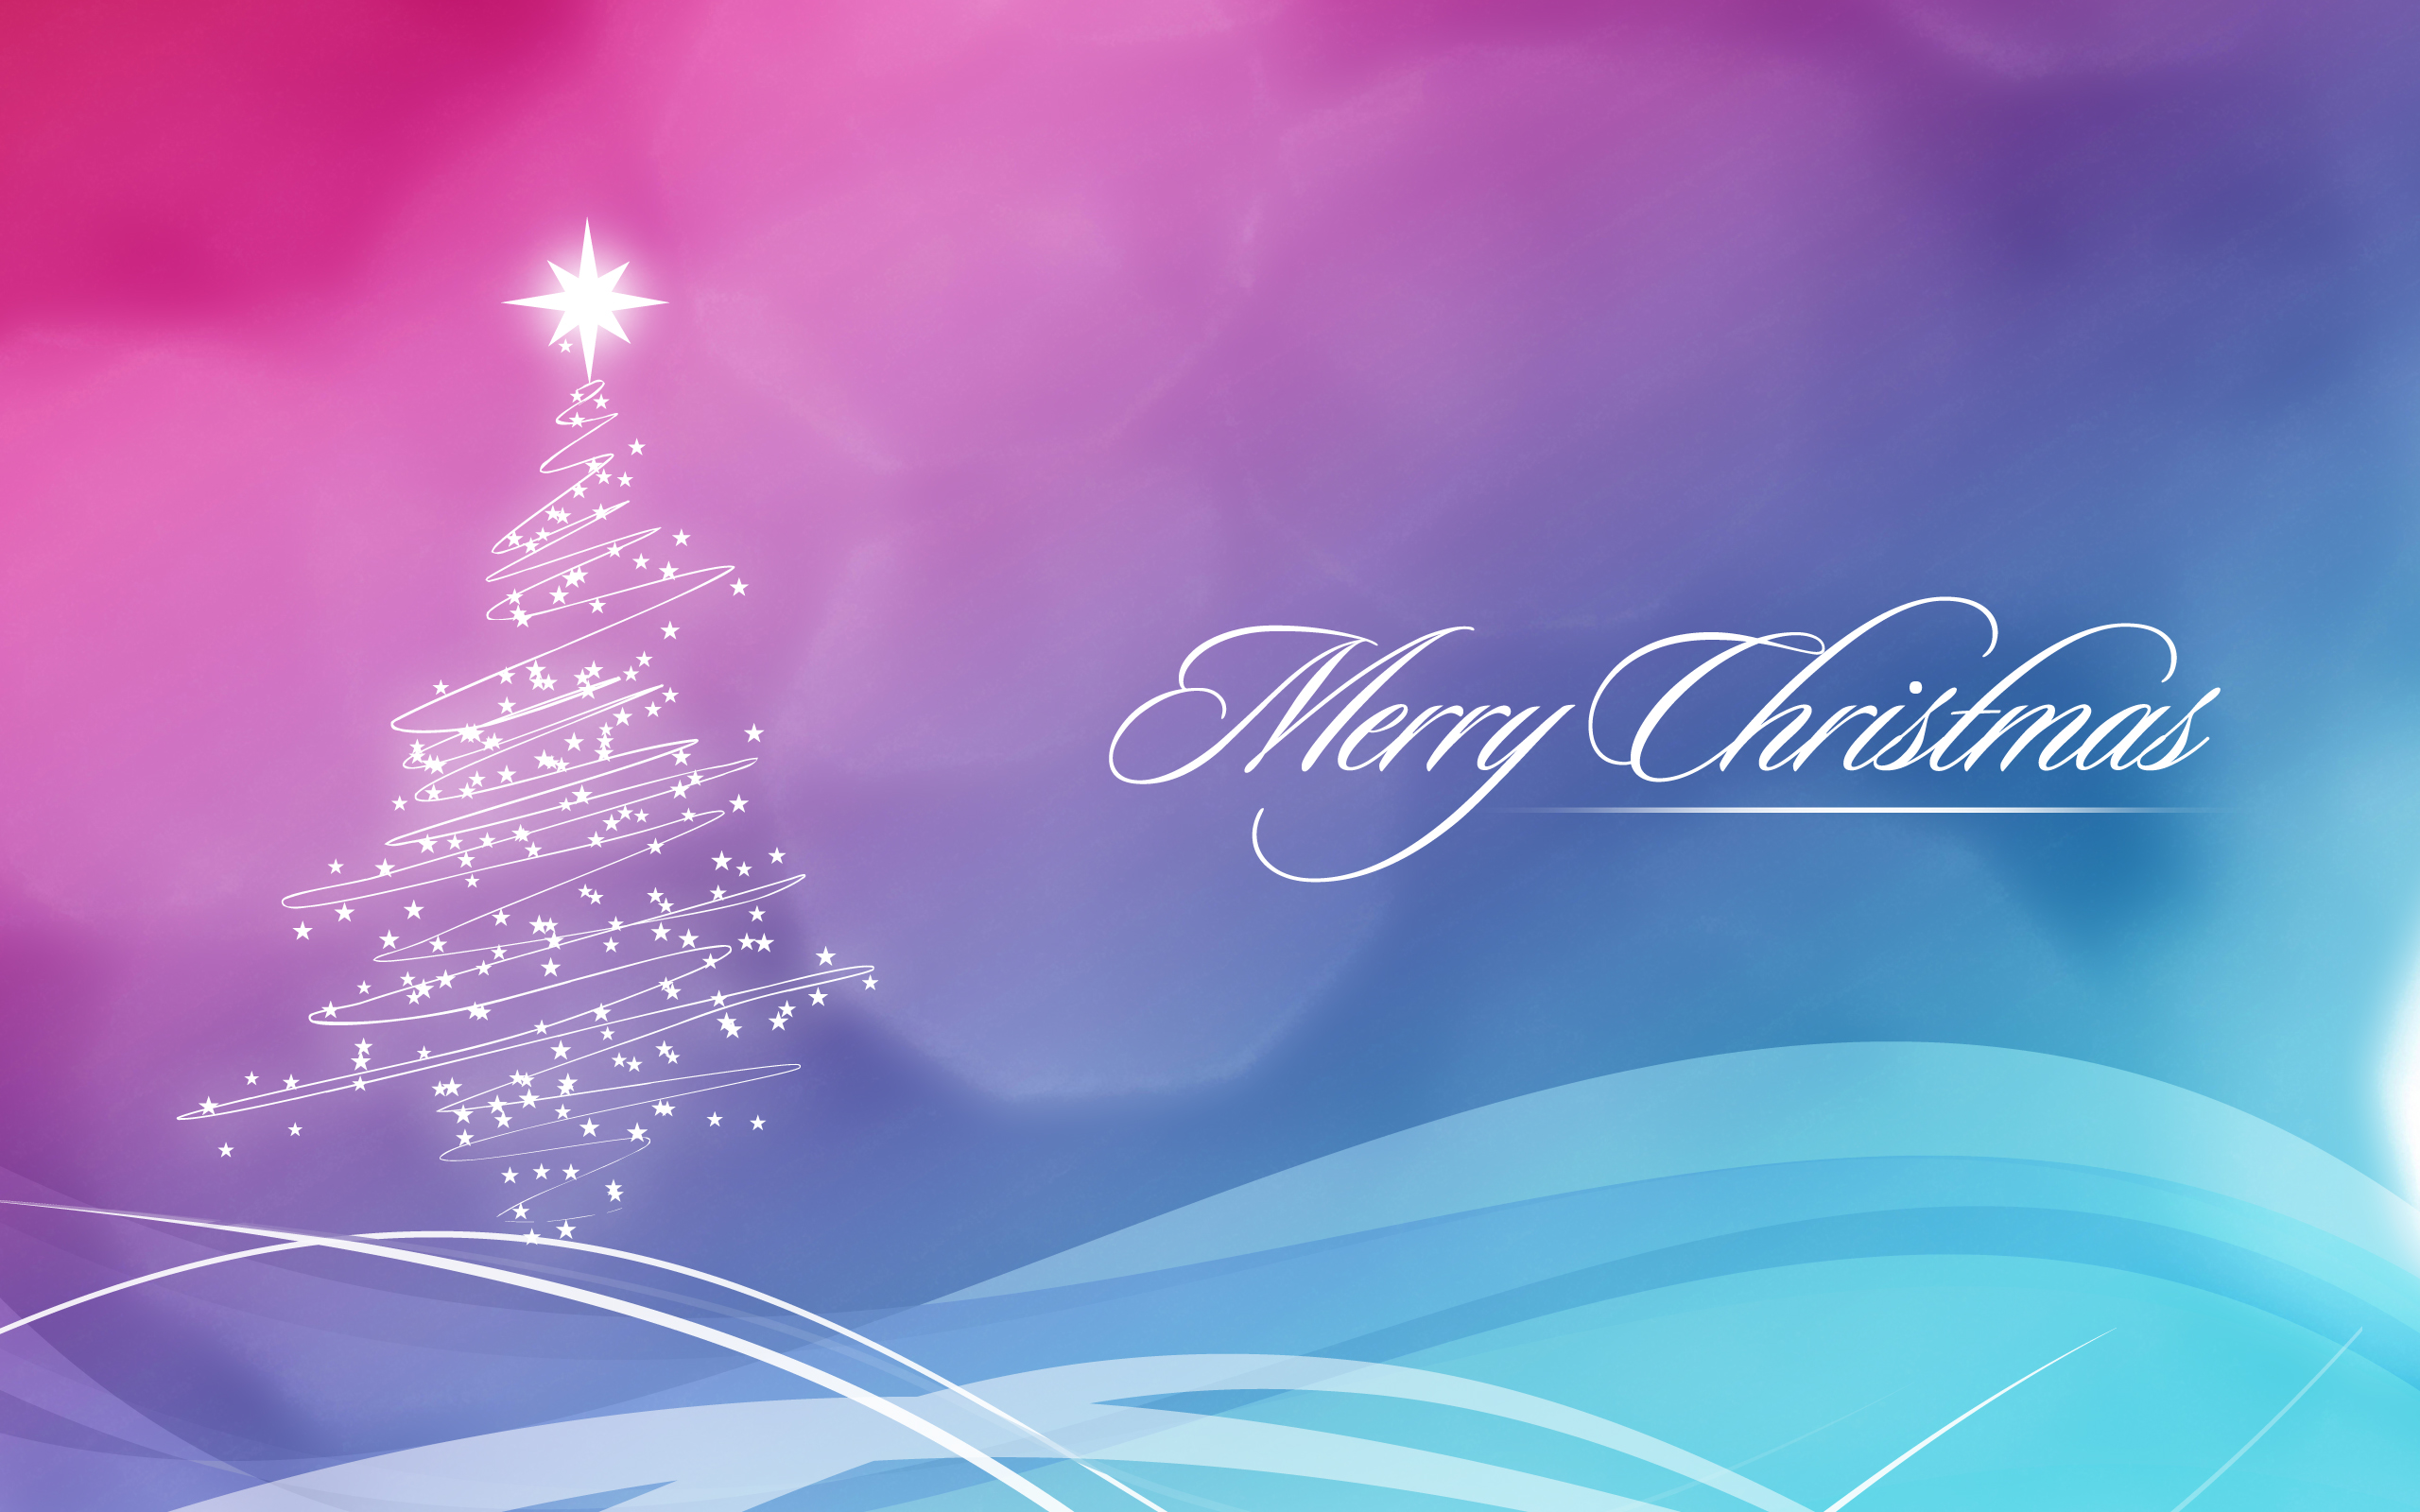 2560x1440 Blue and Pink Christmas Wallpaper YouTube Channel Cover